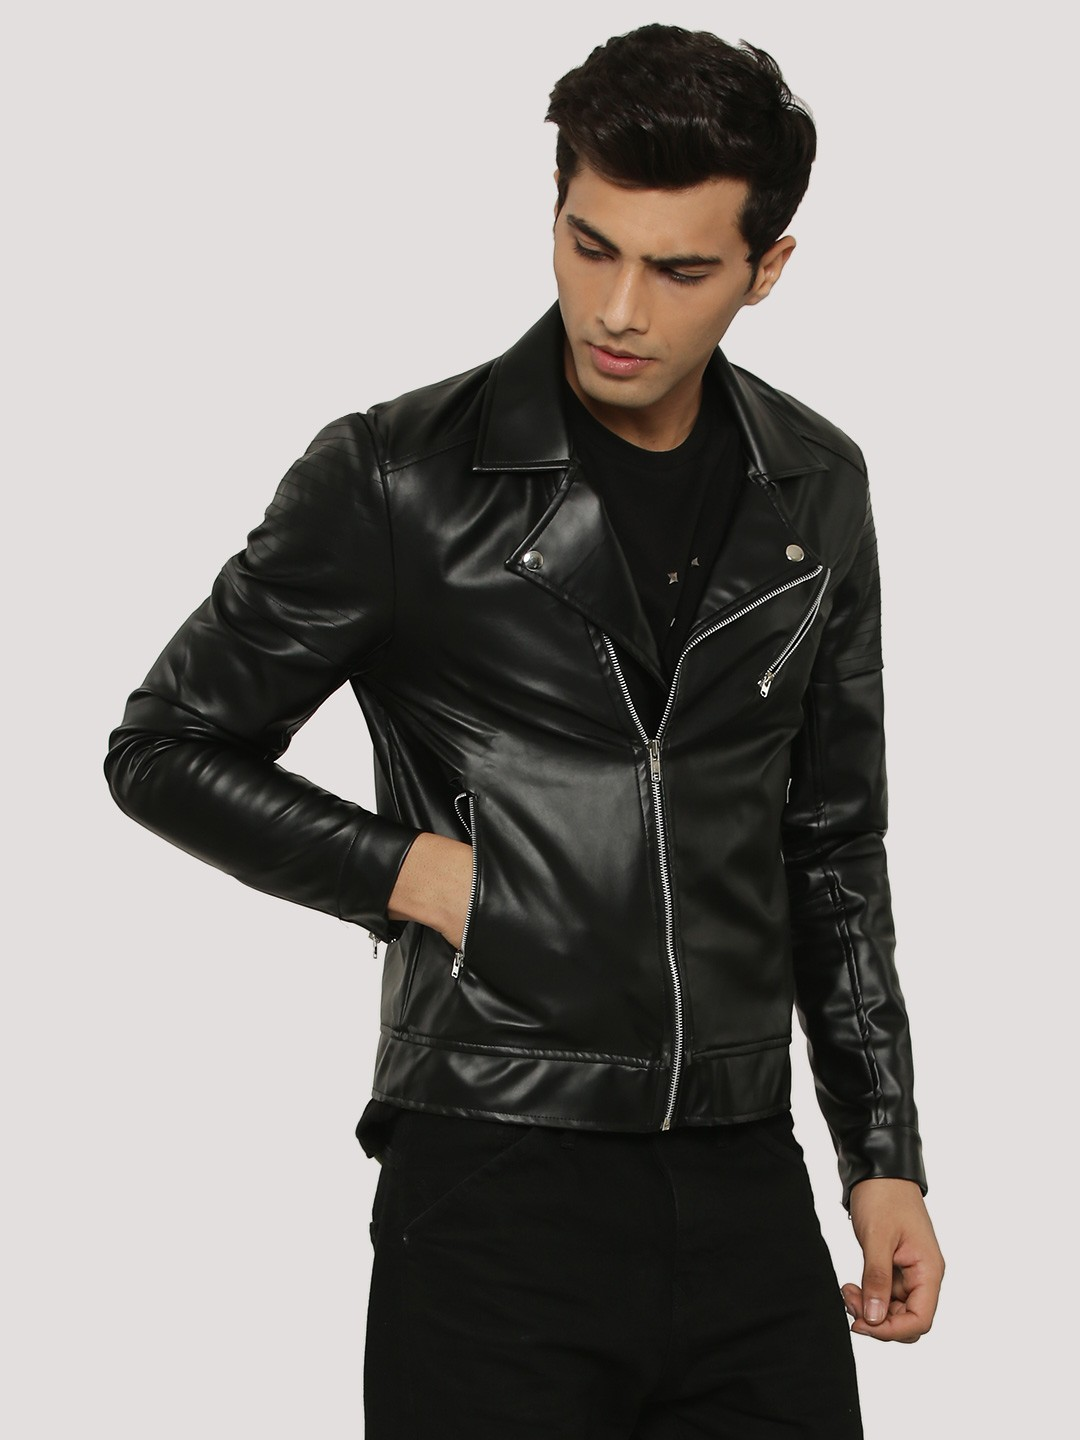 Mens leather jackets online shopping in india